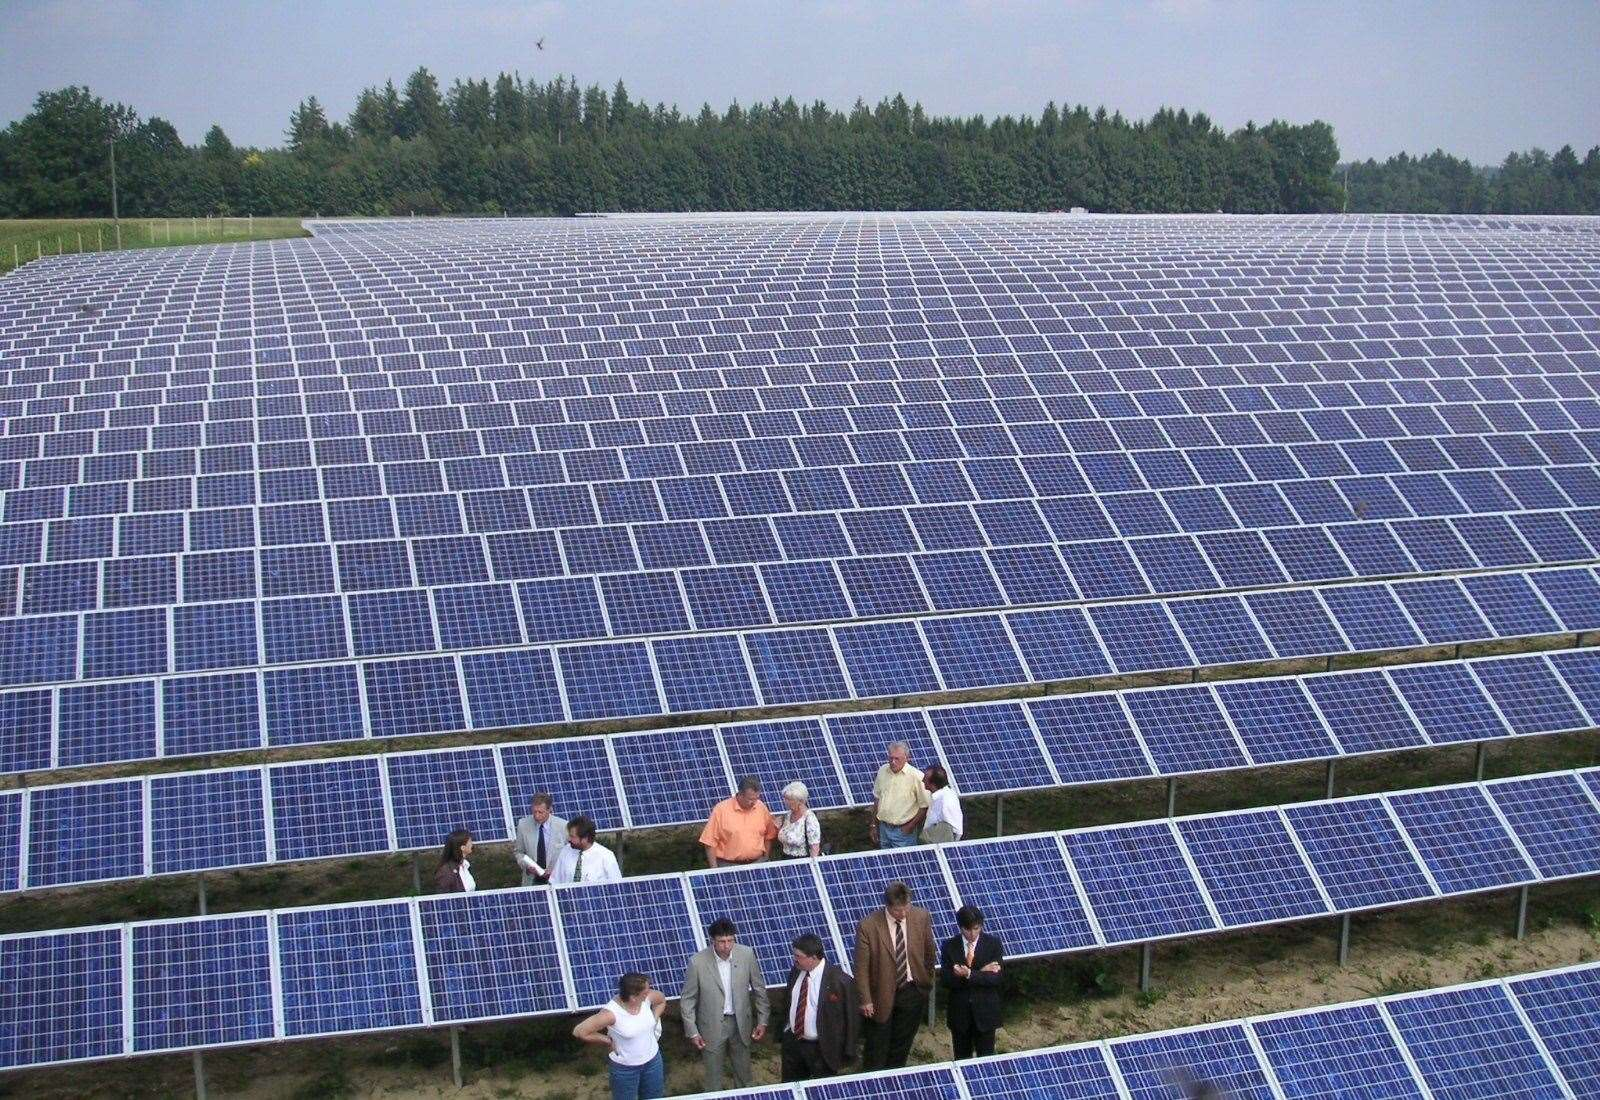 Recycling centres earmarked for solar farms